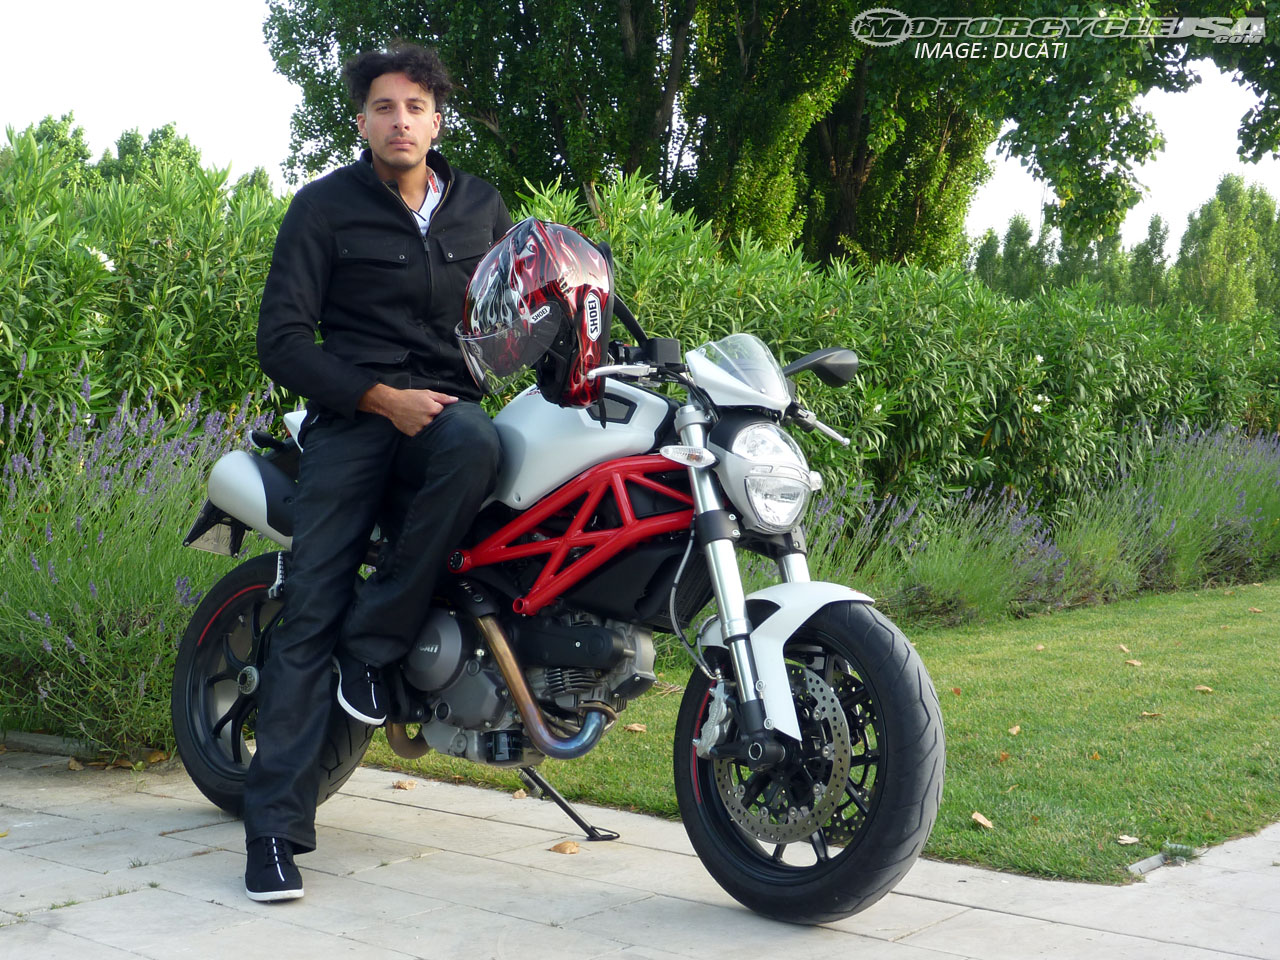 Ducati Hypermotard 796 images #79593